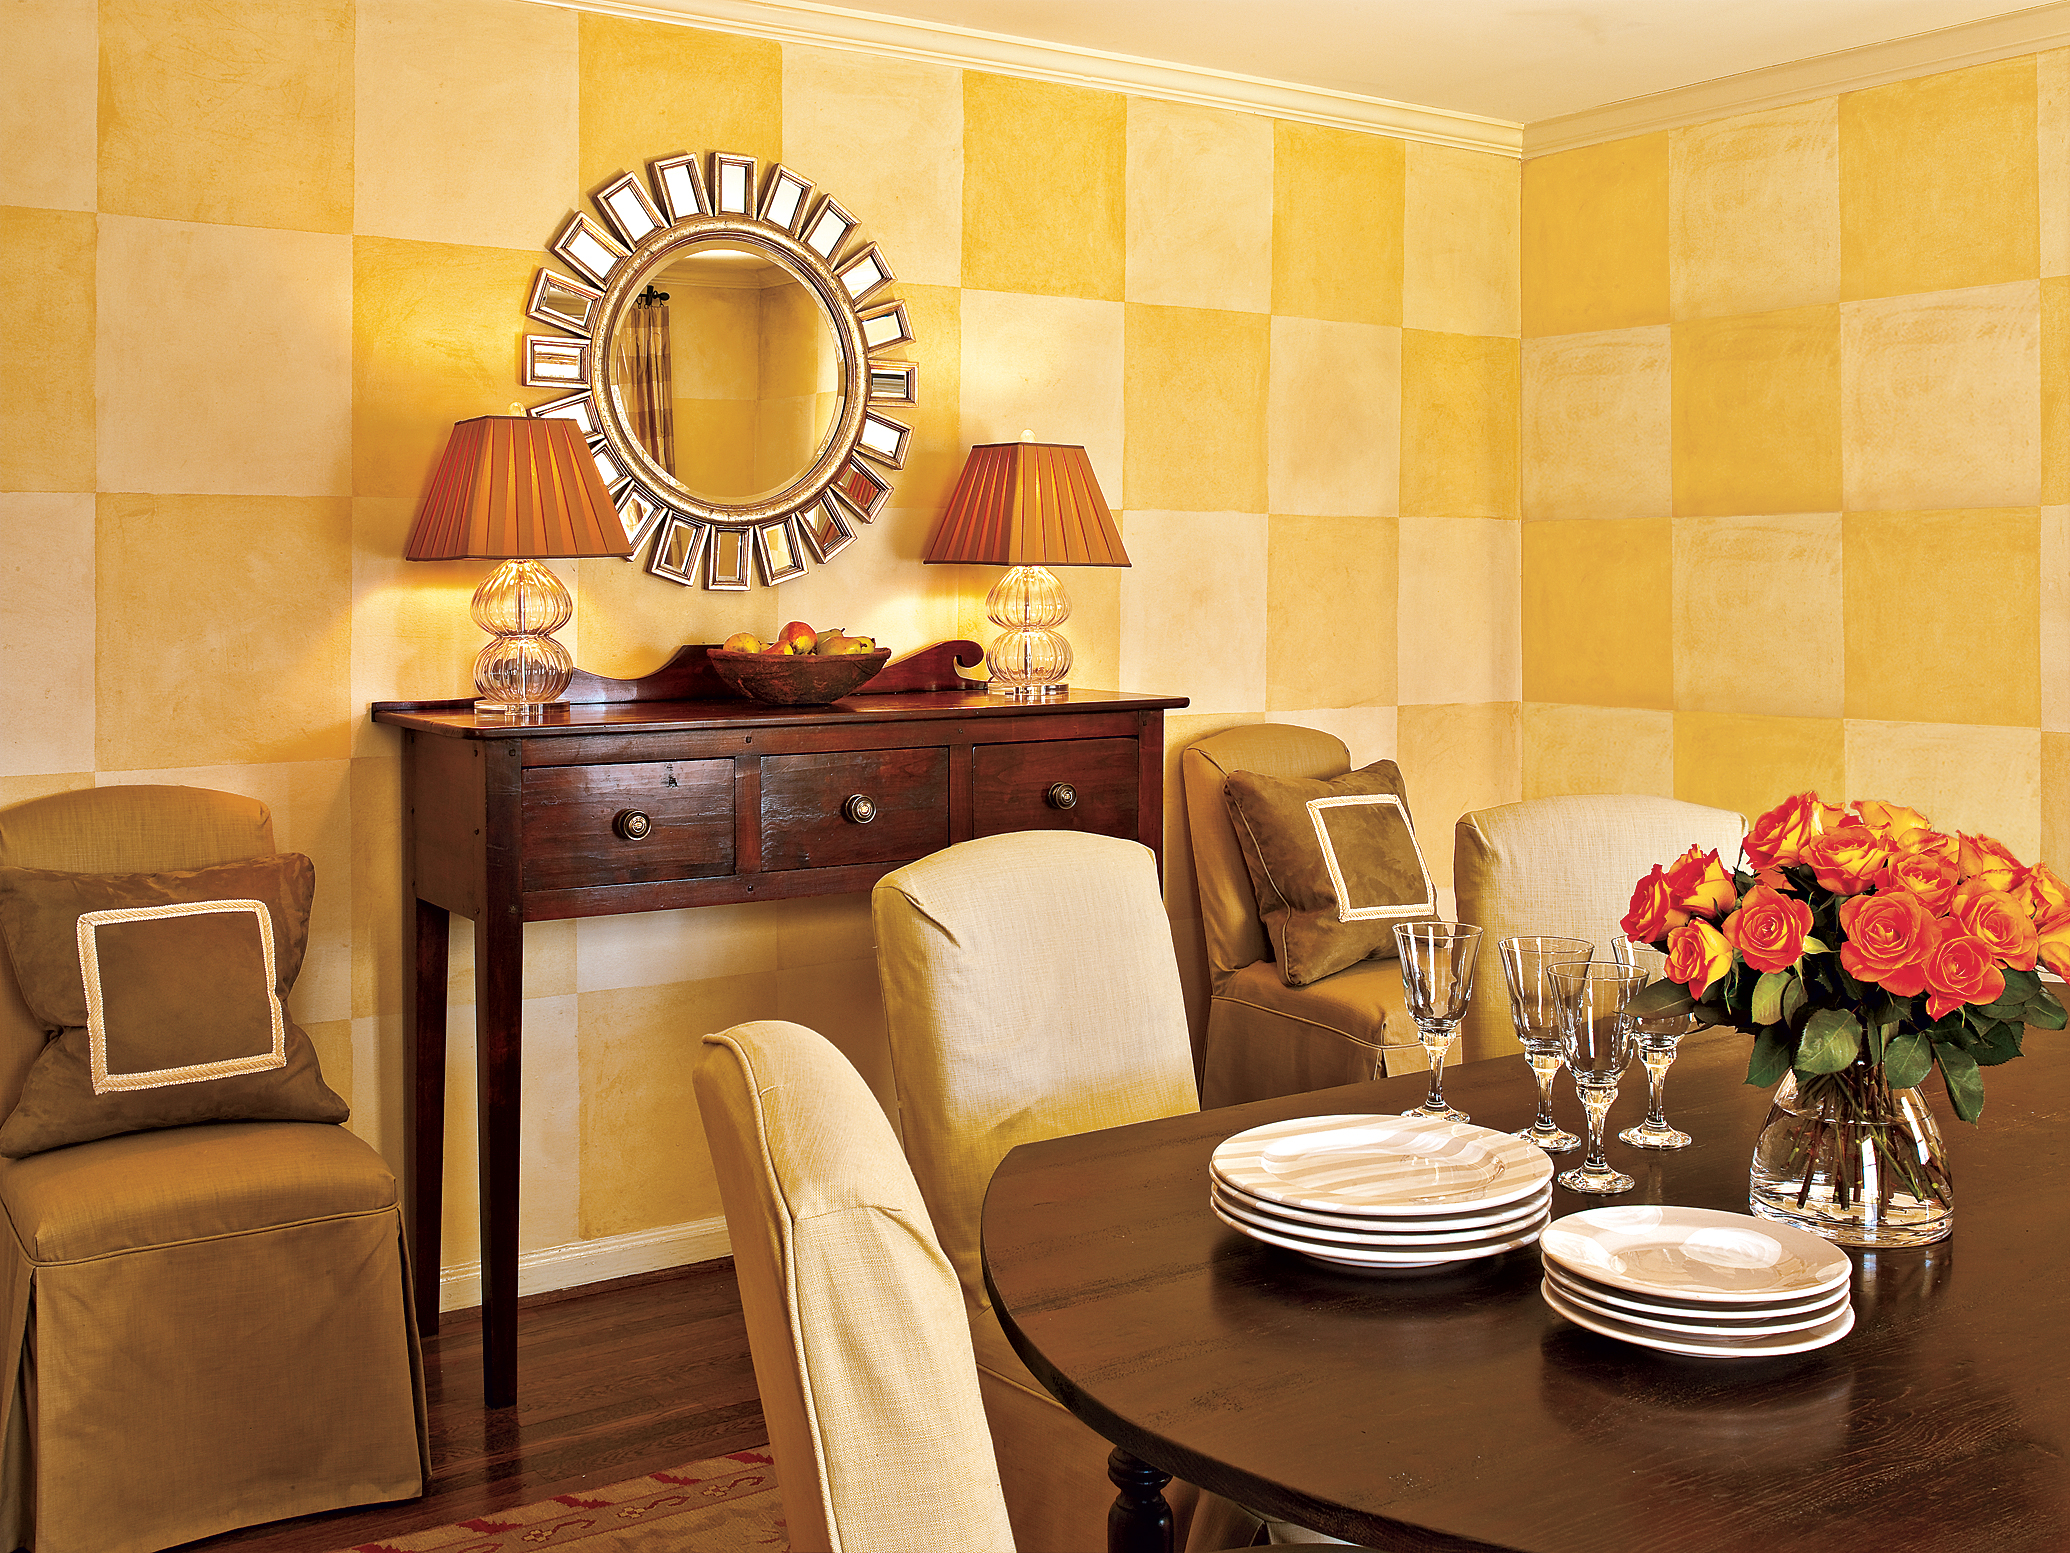 Checkered yellow wall painting in a dining room.